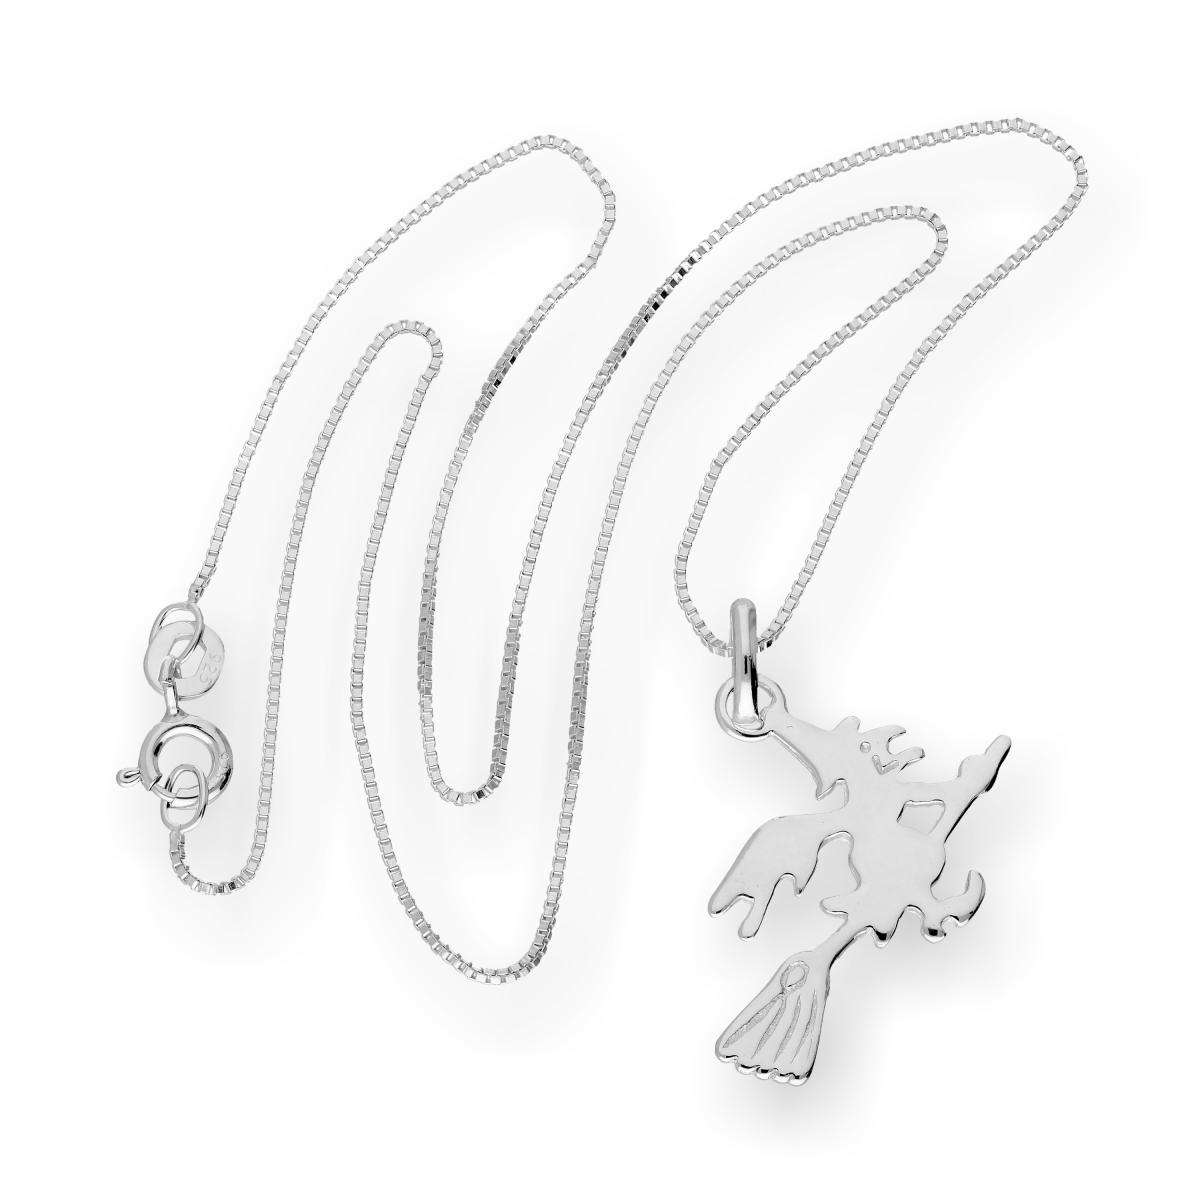 Alterative image for Sterling Silver Witch on a Broomstick Pendant Necklace 14 - 22 Inches